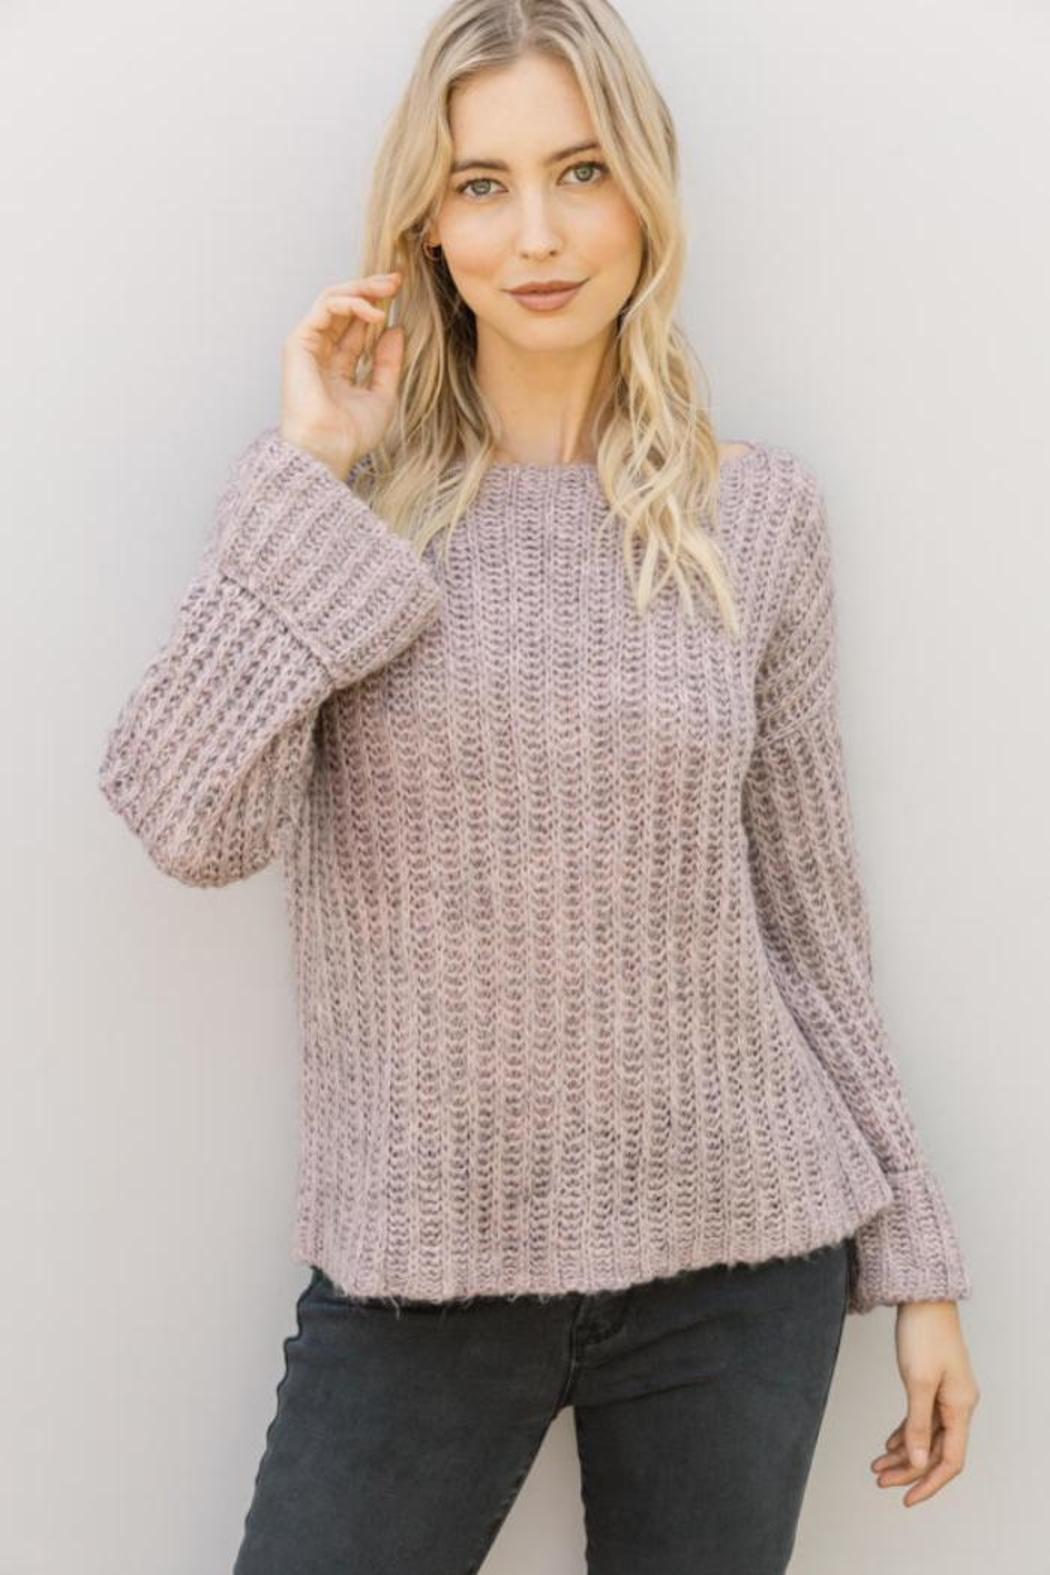 Mystree Lavender Wide-Sleeve Sweater - Main Image